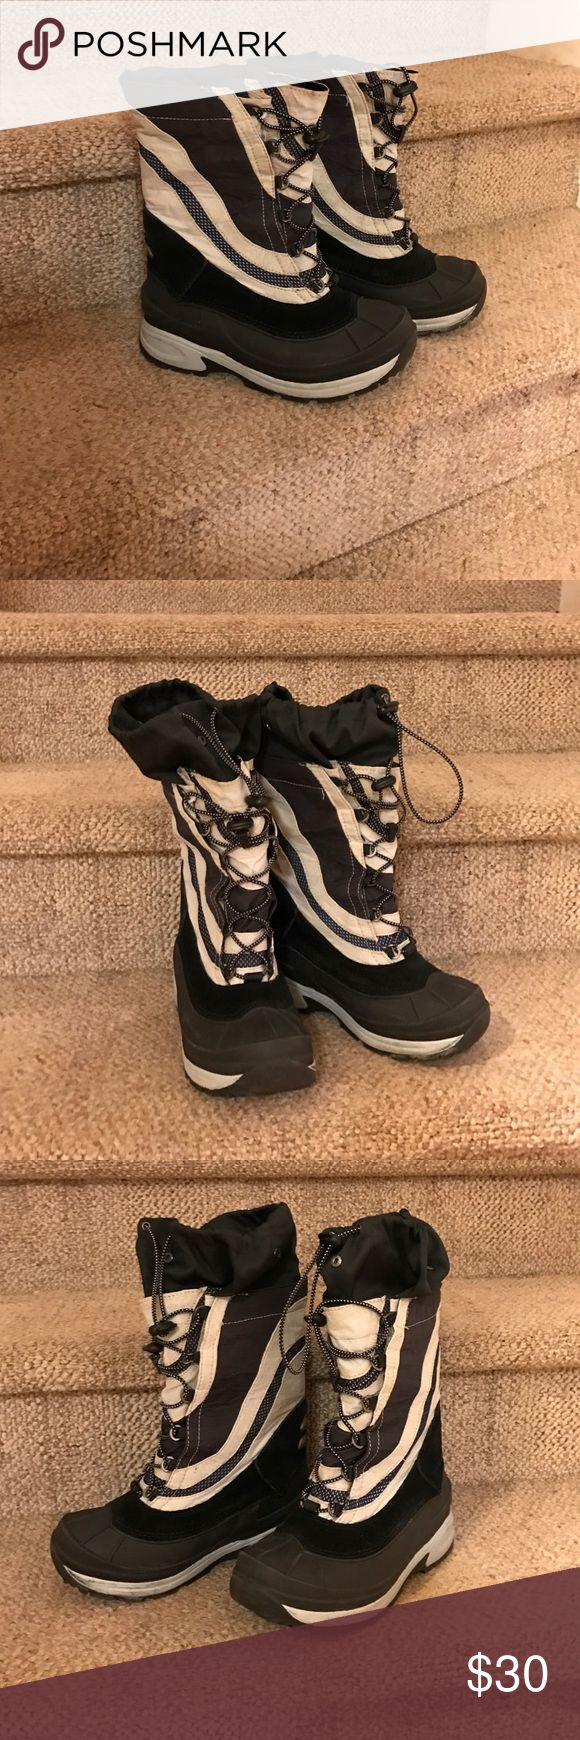 Boys LL Bean Winter Boots Black, cream, and grey winter boots from LL Bean. EUC. No wear on the treads. Comes from a smoke free home. LL Bean Shoes Rain & Snow Boots